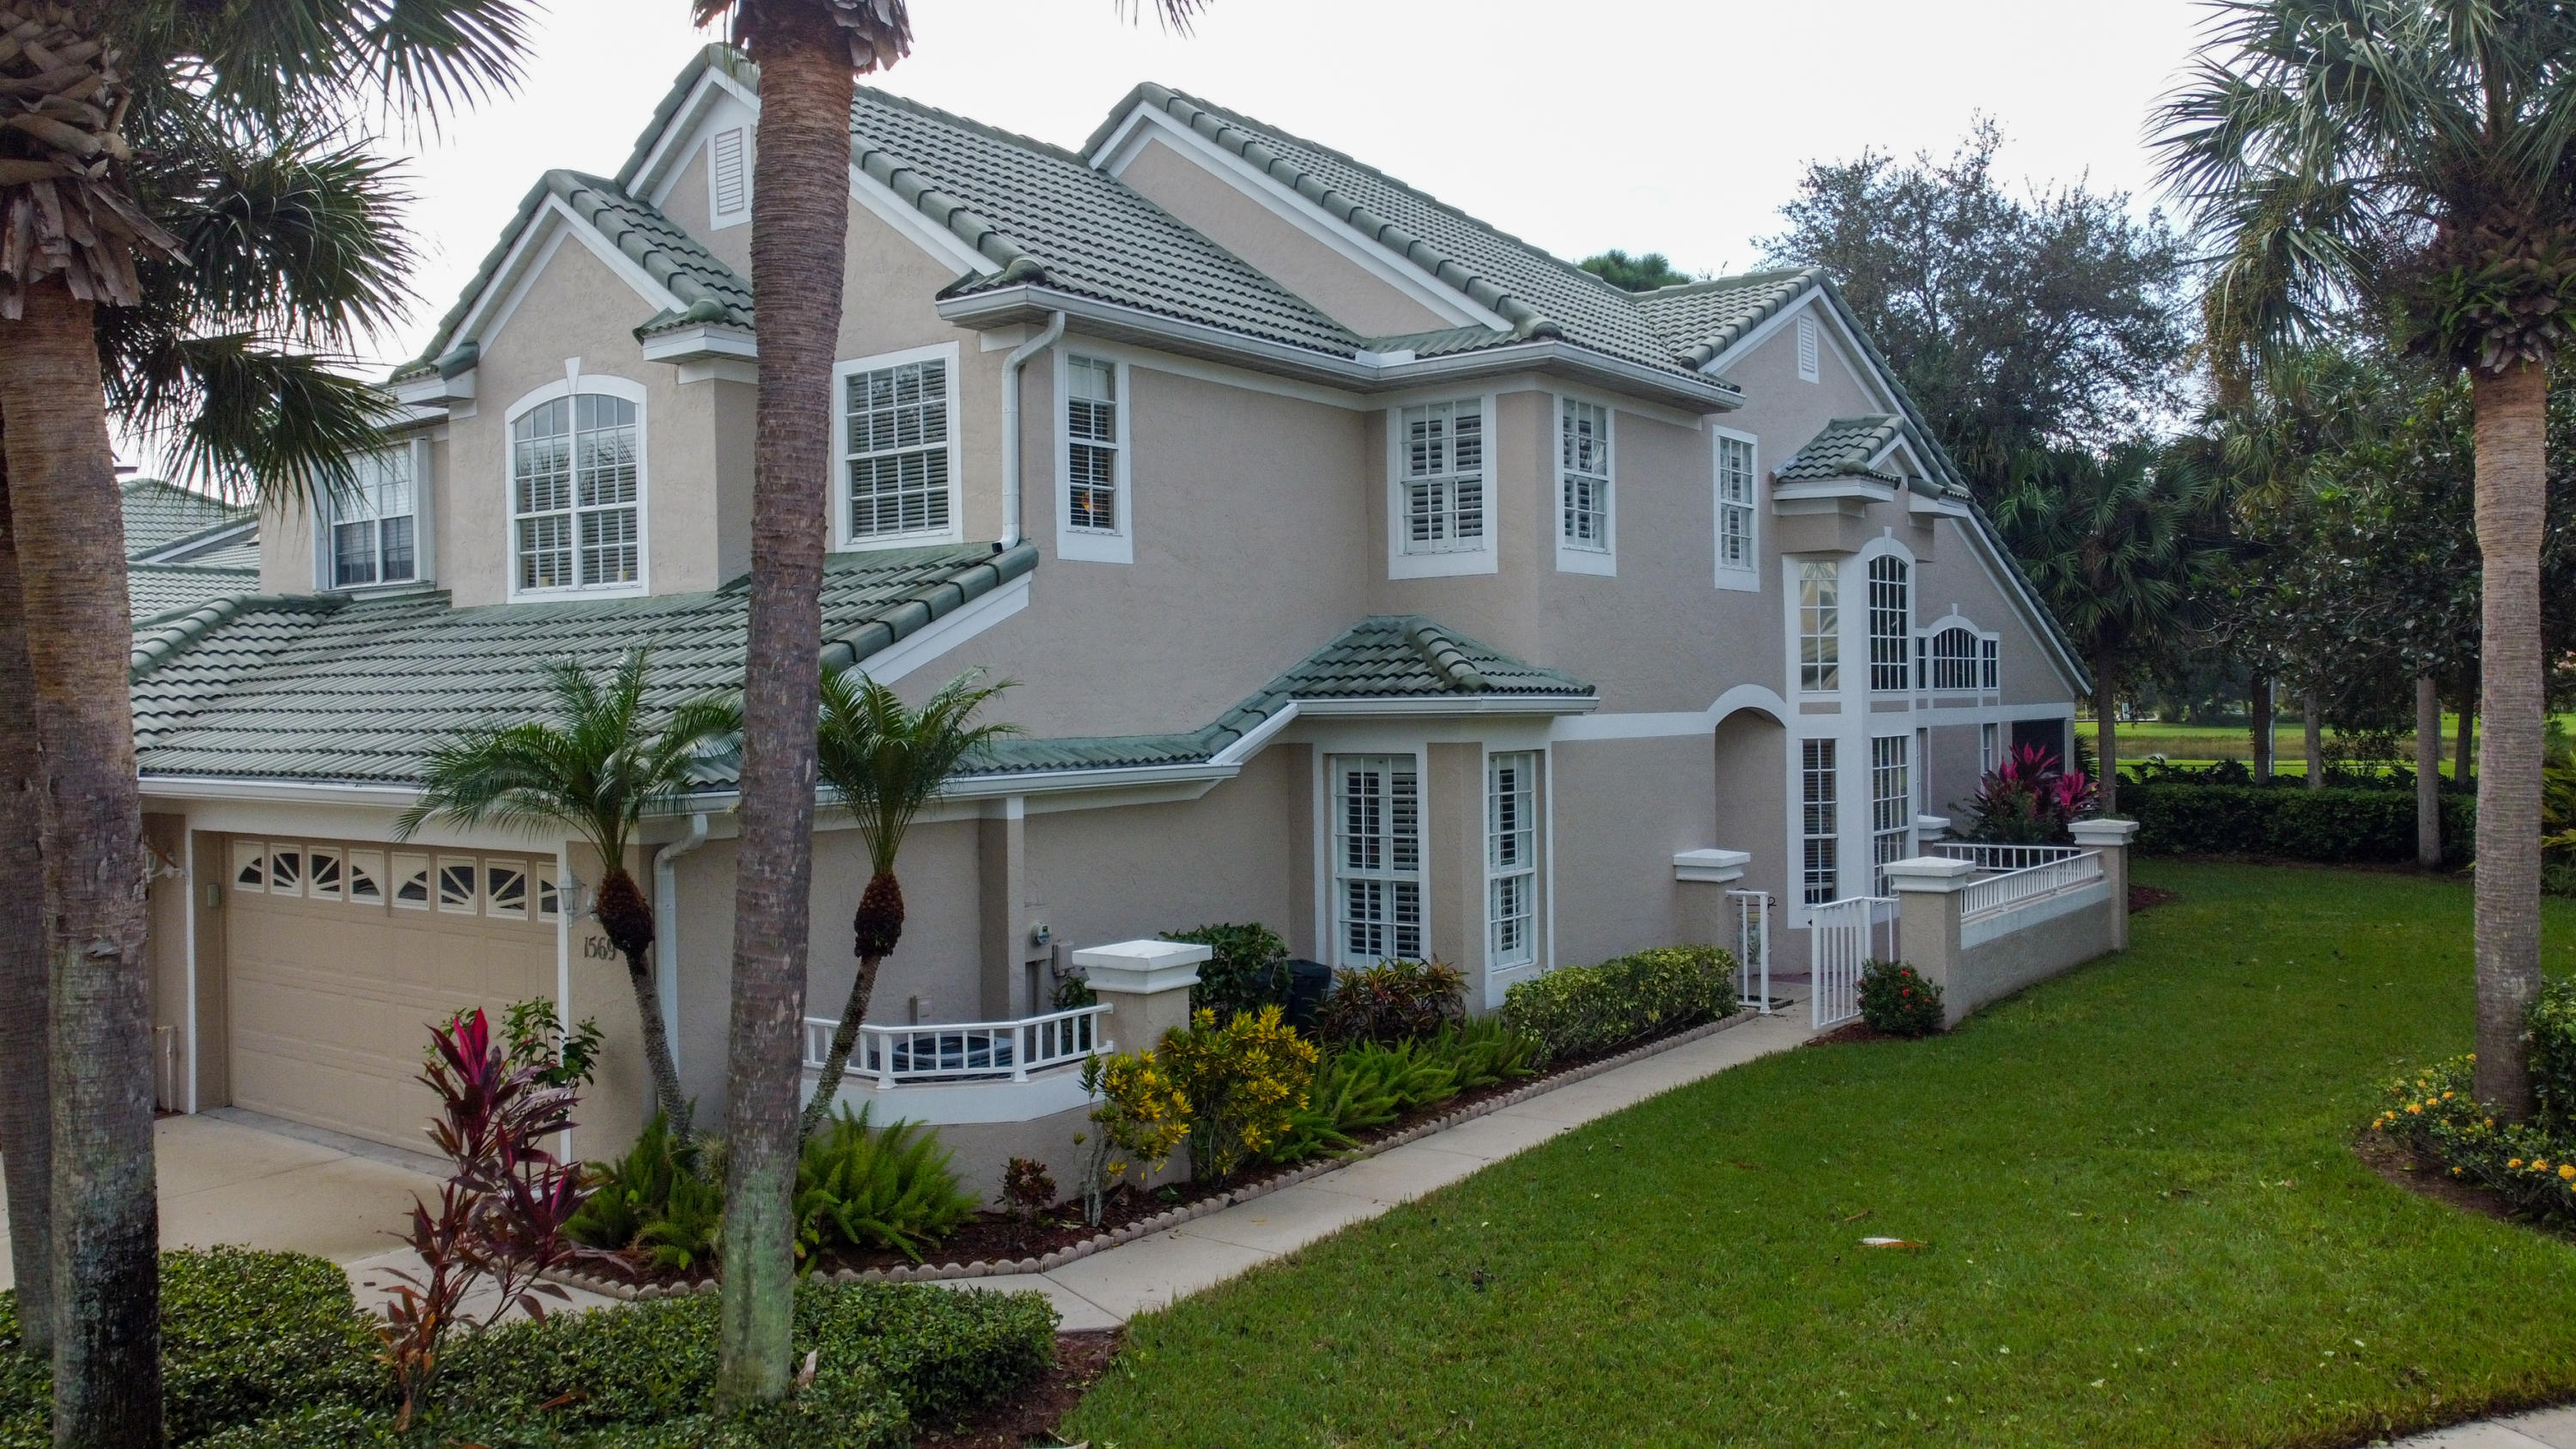 Home for sale in Lake Charles Port Saint Lucie Florida